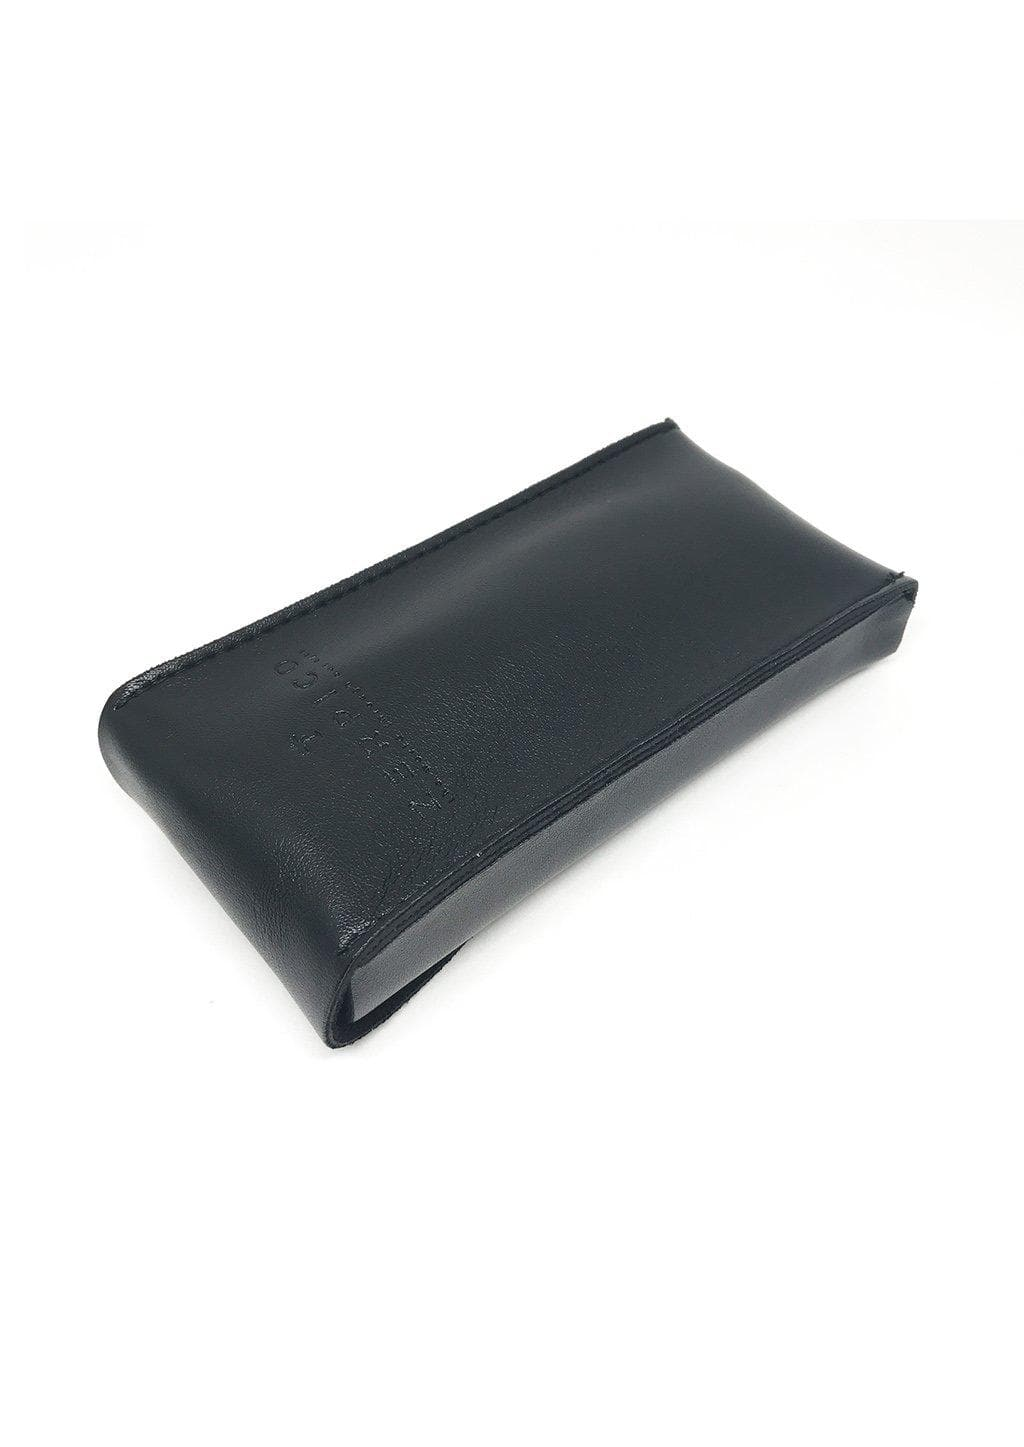 Zerpico Sunglasses Leather Pouch - zerpico